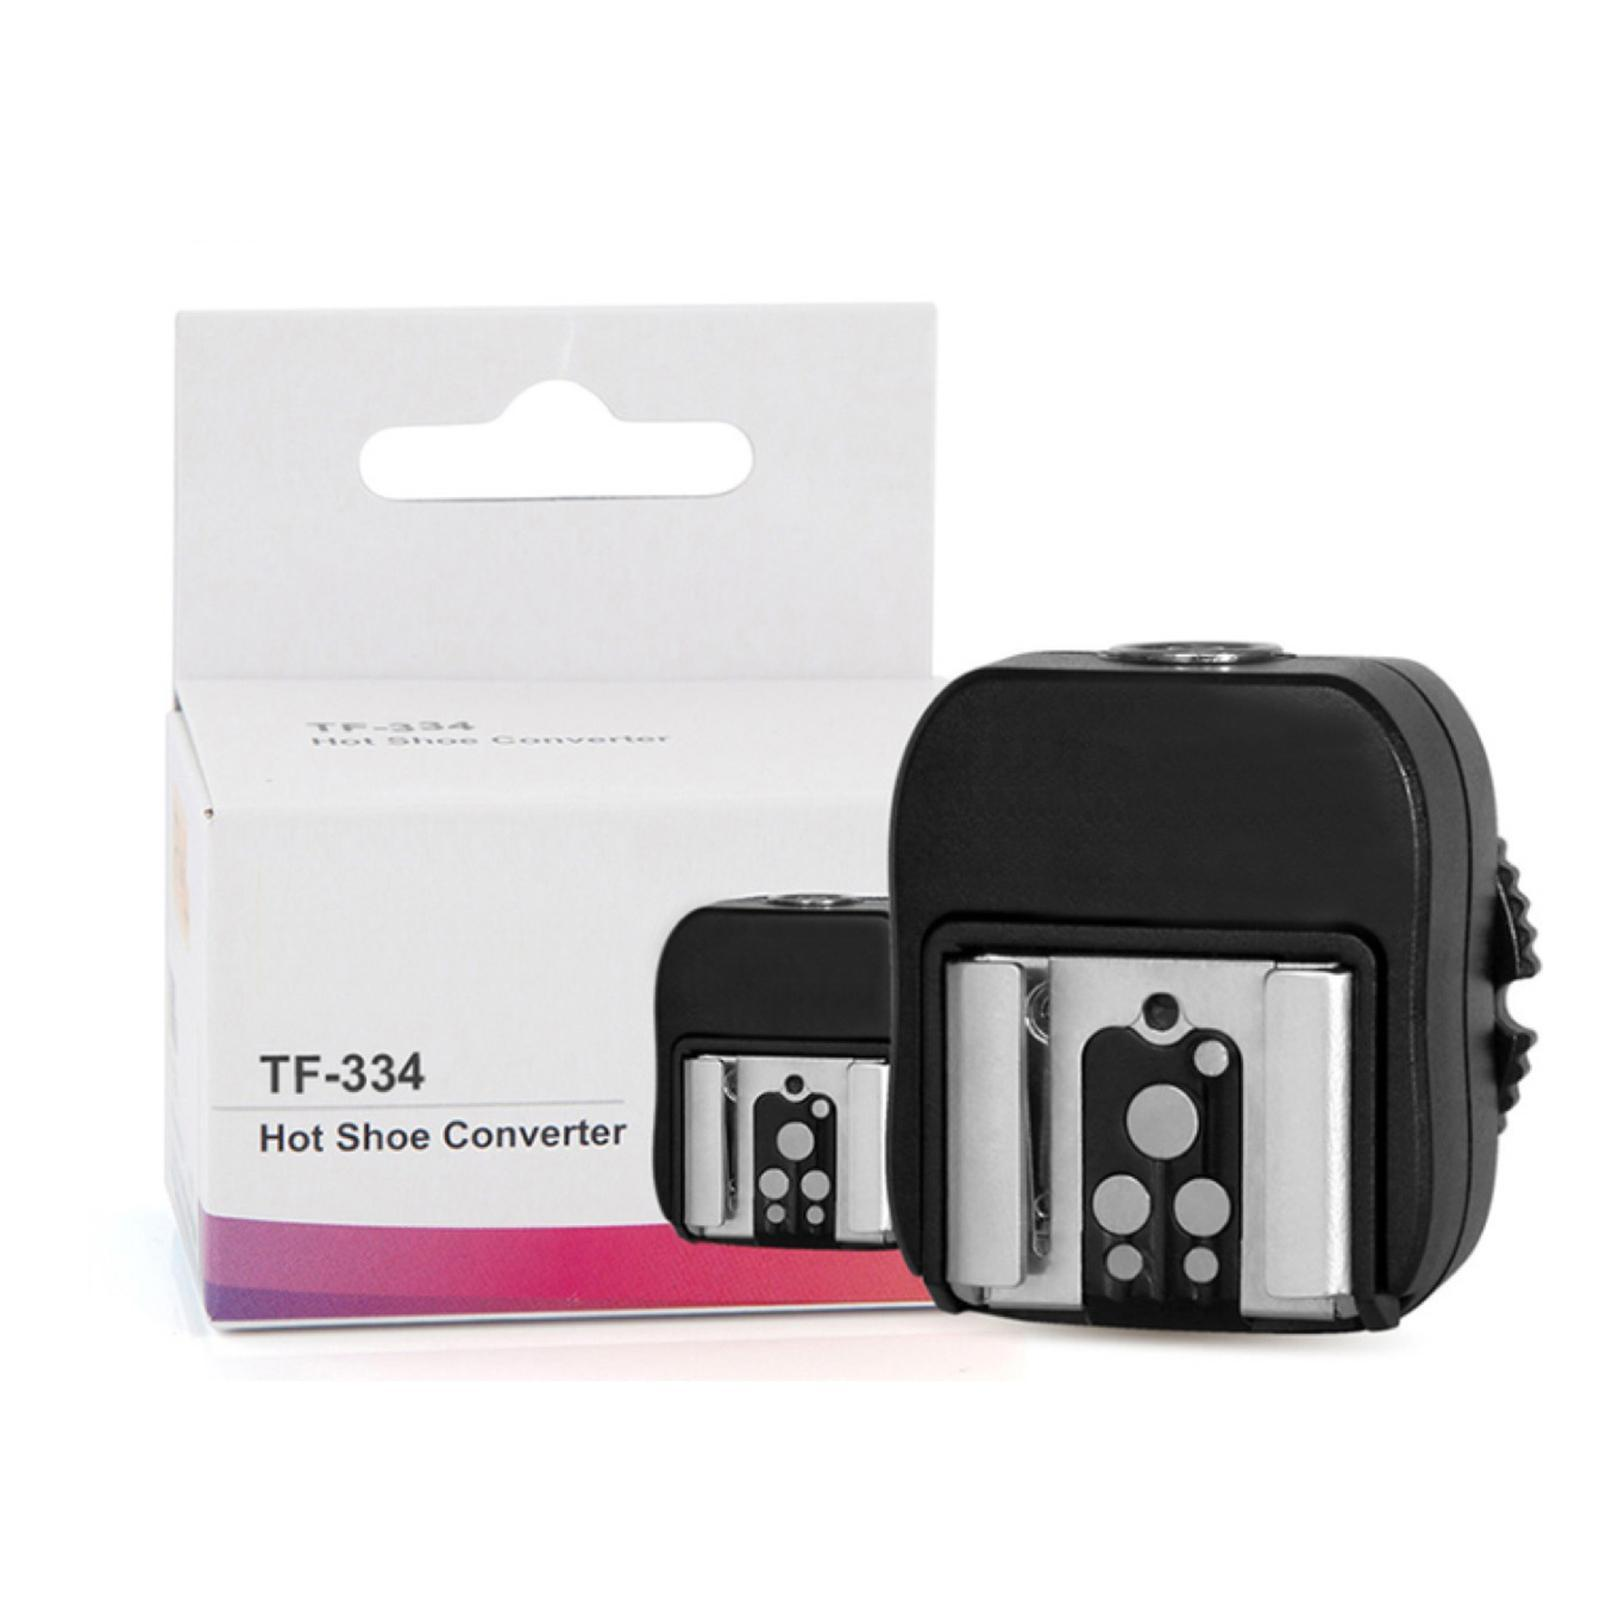 thumbnail 3 - TF334 Pixel Hot shoe Adapter with PC Port for Sony Studio Light Camera Flash